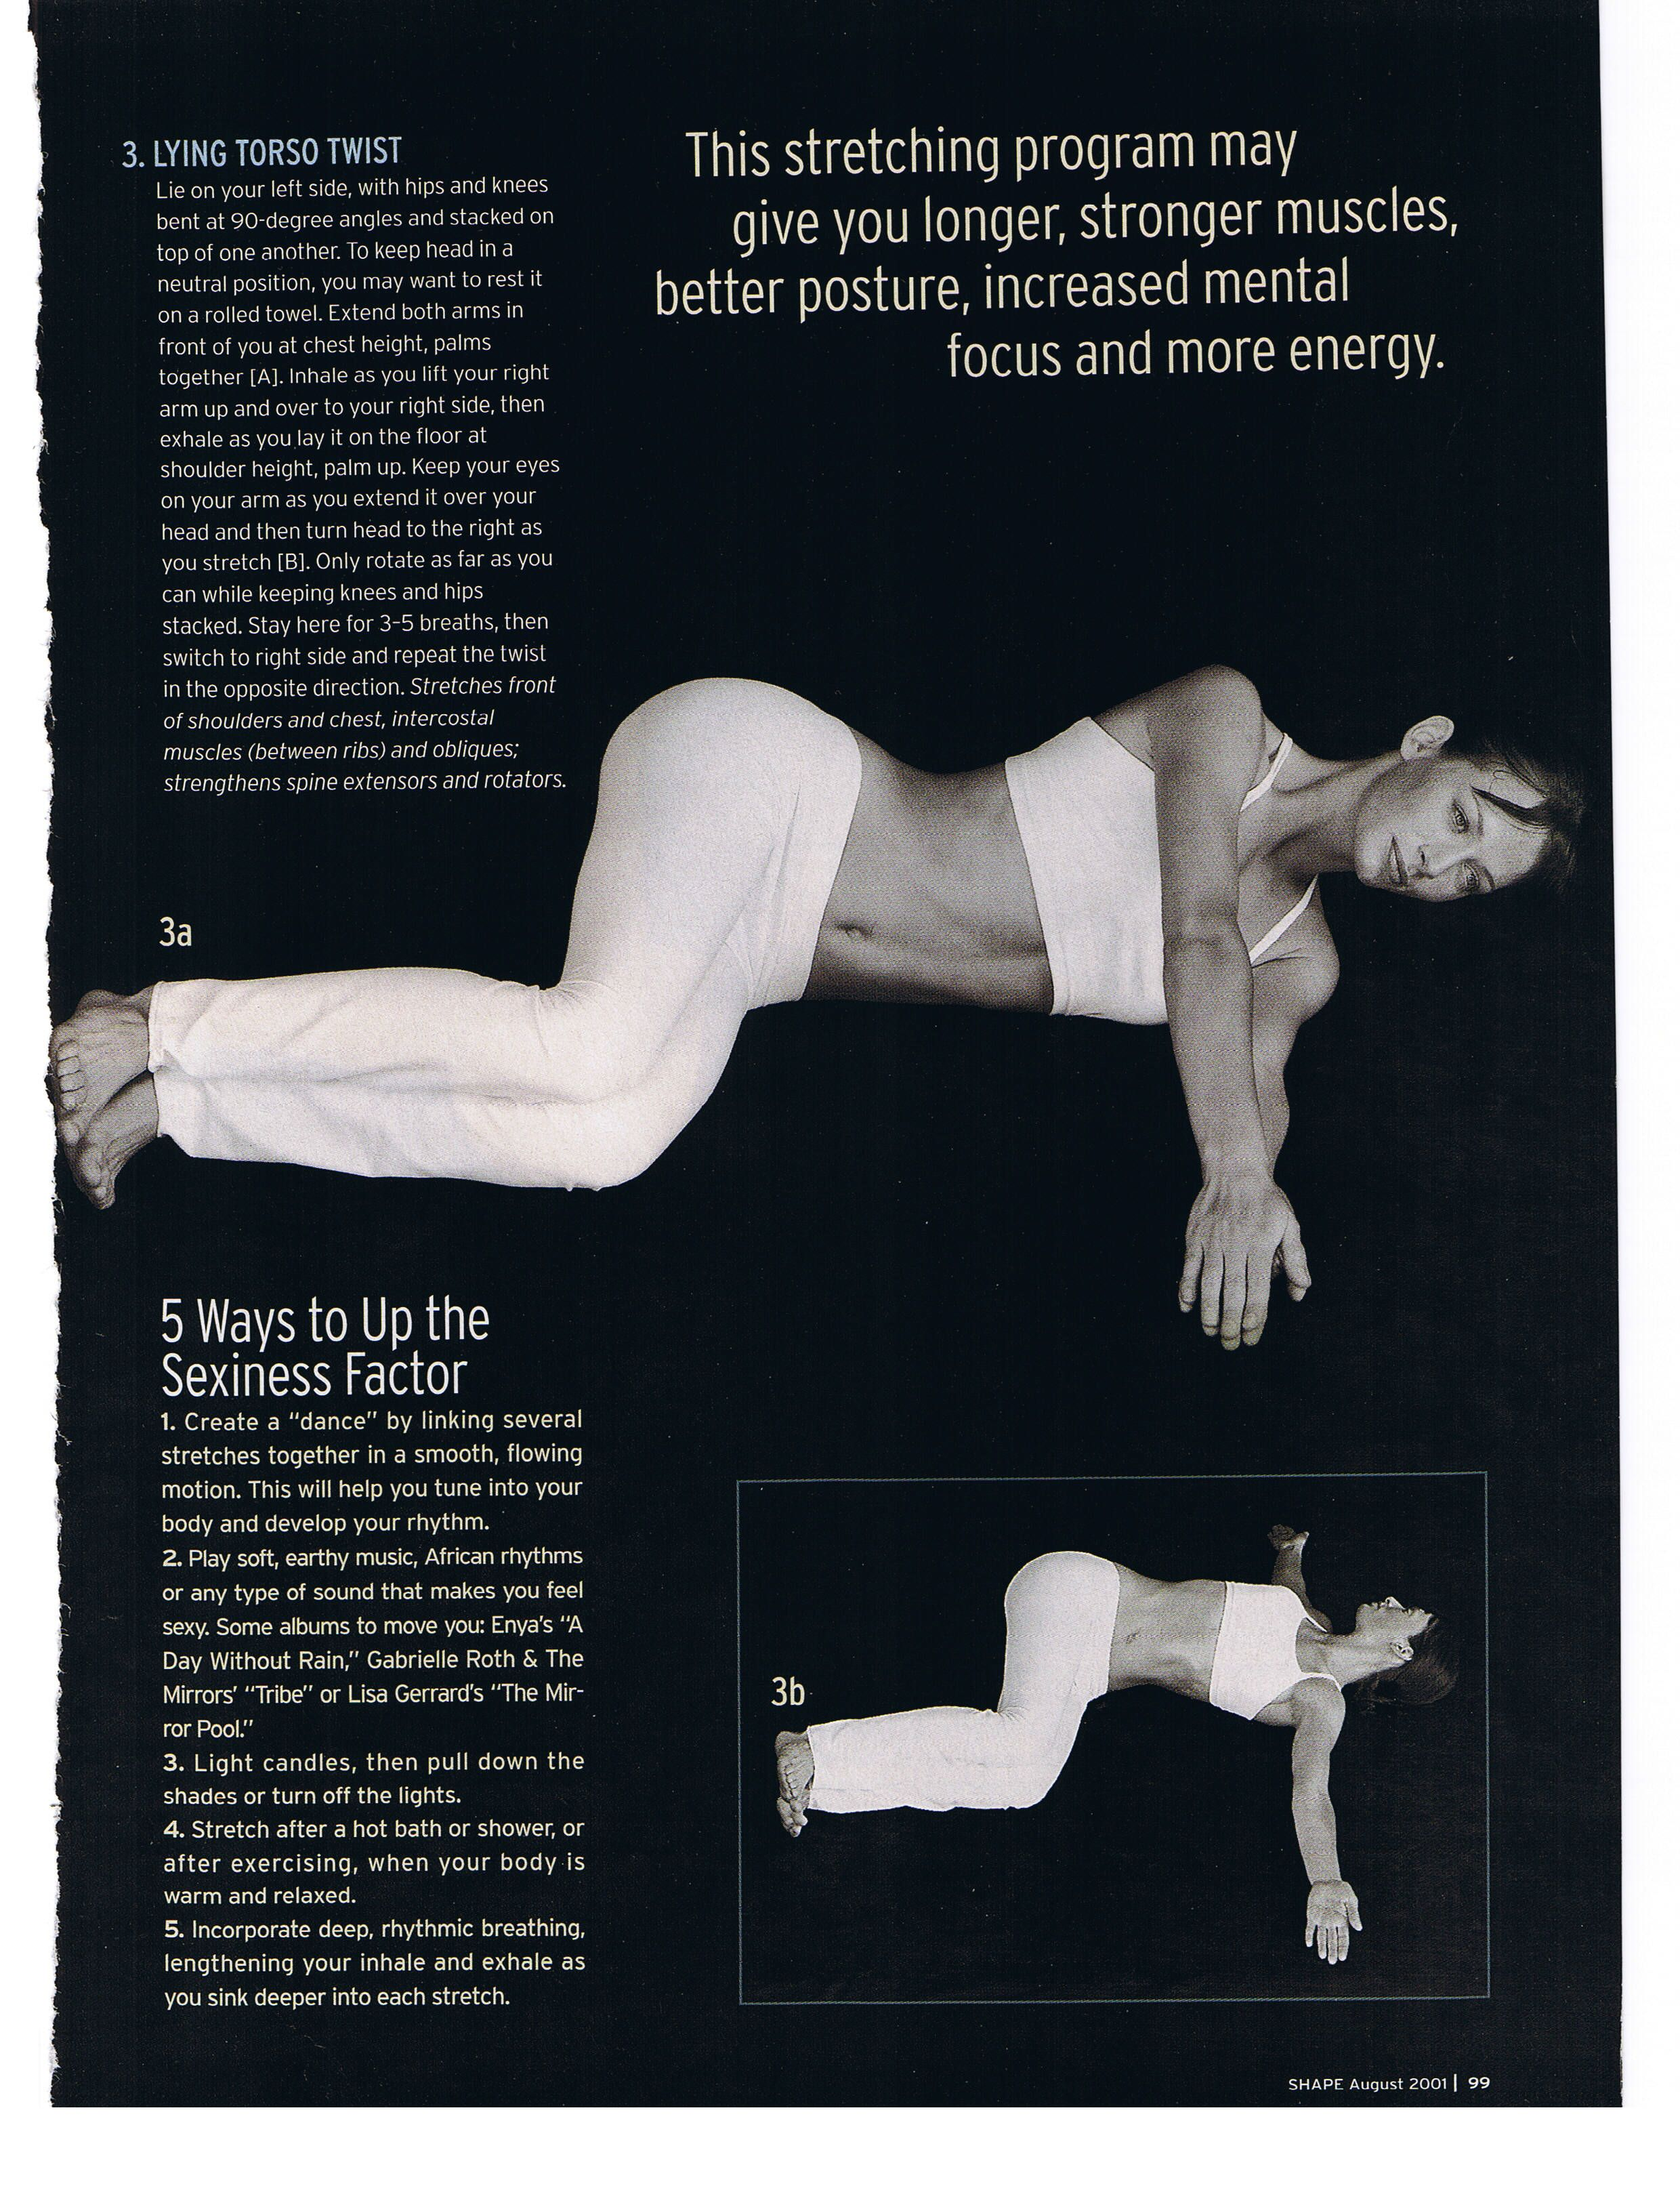 Stretching & Toning Better posture, Strong muscles